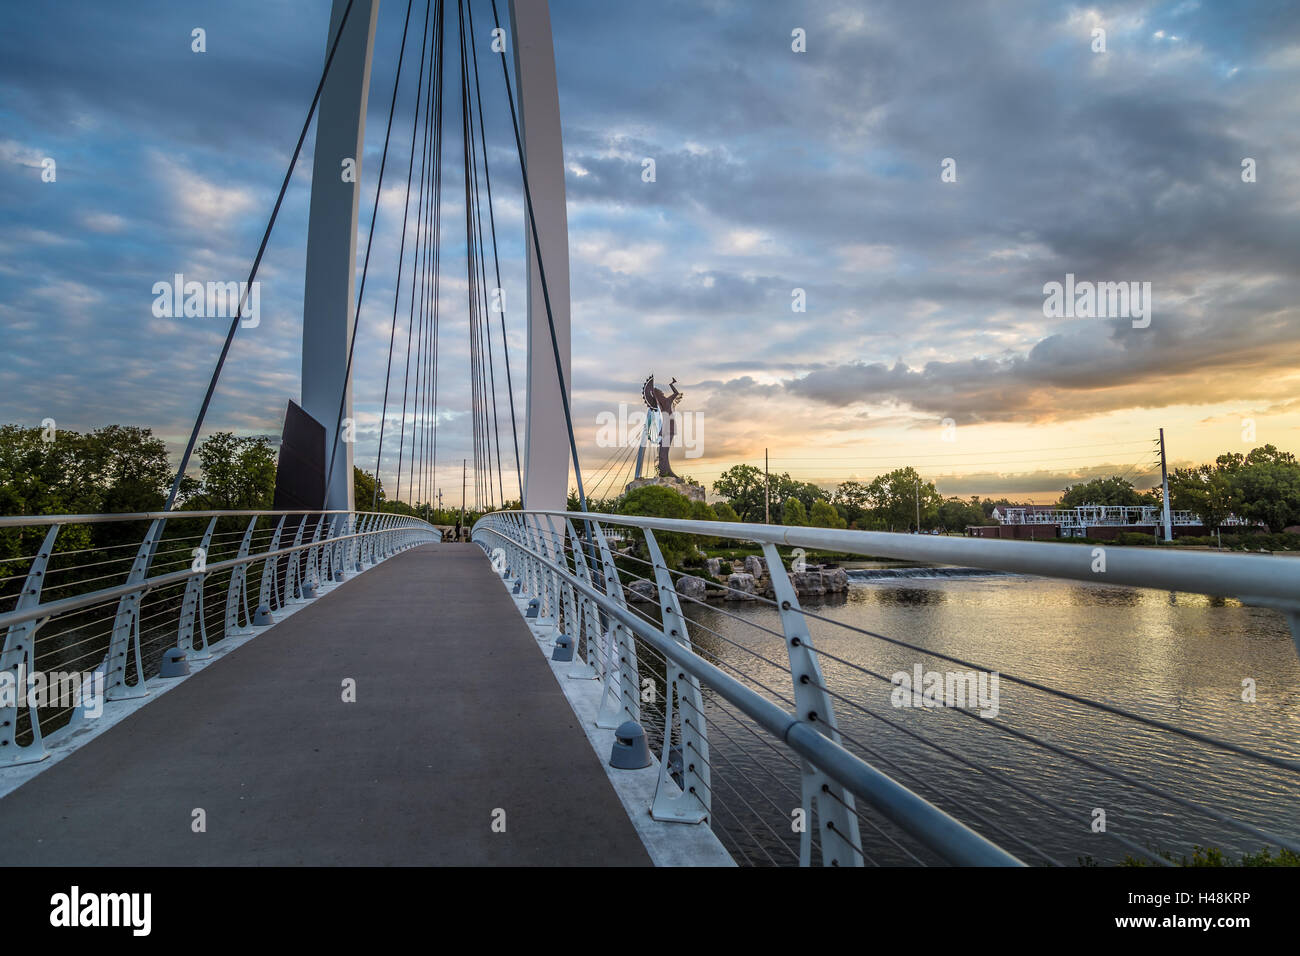 Keeper of the Plains in Wichita, Kansas bridge near sunrise - Stock Image